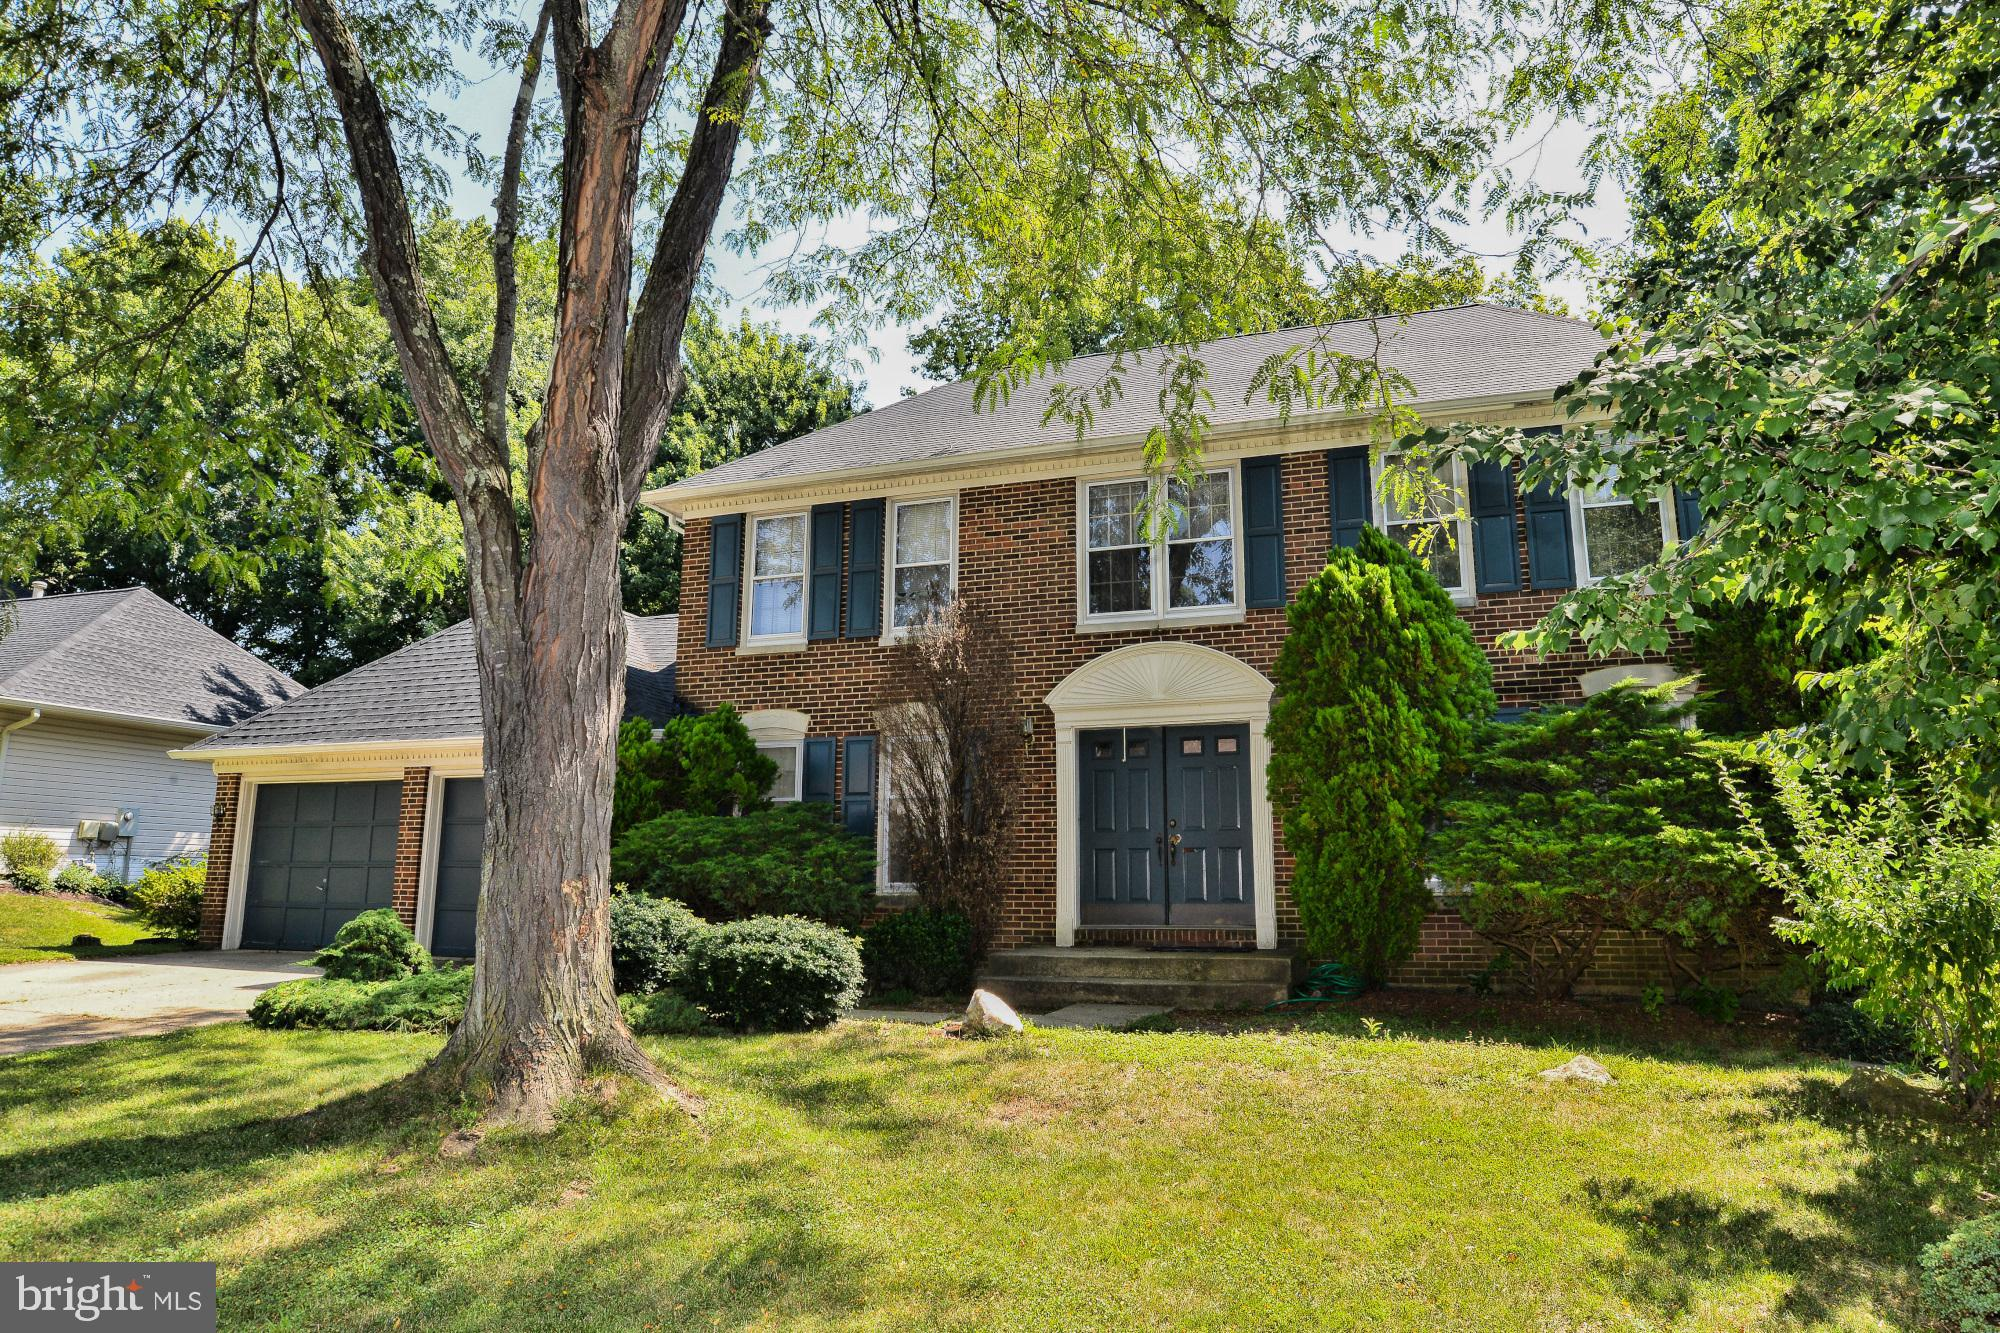 **Lovely Sheffield Model, almost 4,000 sq ft of living space on a no-thru street with entrance at the end for Pohick Stream Valley park-walk to Lake Mercer or South Run Rec Center! Gorgeous curb appeal, center hall Colonial style with double door entry to spacious foyer. Formal living & dining rooms w/ hardwood flooring. Open concept Kitchen overlooks breakfast area & relaxing family room w/ brick hearth fireplace, built-ins & wet bar. Walk-out to Deck with stairs to backyard. Main level laundry. Enormous Master suite featuring sitting rm or convert to 4thBR, 2 walk-in closets, dressing area & huge, private bath. Master bath offers dual sink vanities, sep shower & step up soaking tub. 2nd & 3rd bedroom have ample closet space & share a hall bath with dual sink vanity. Fully Finished lower level offers expansive RR, full bath, 5th bedroom & storage room. Great home in fantastic location-come in and remodel as you want!